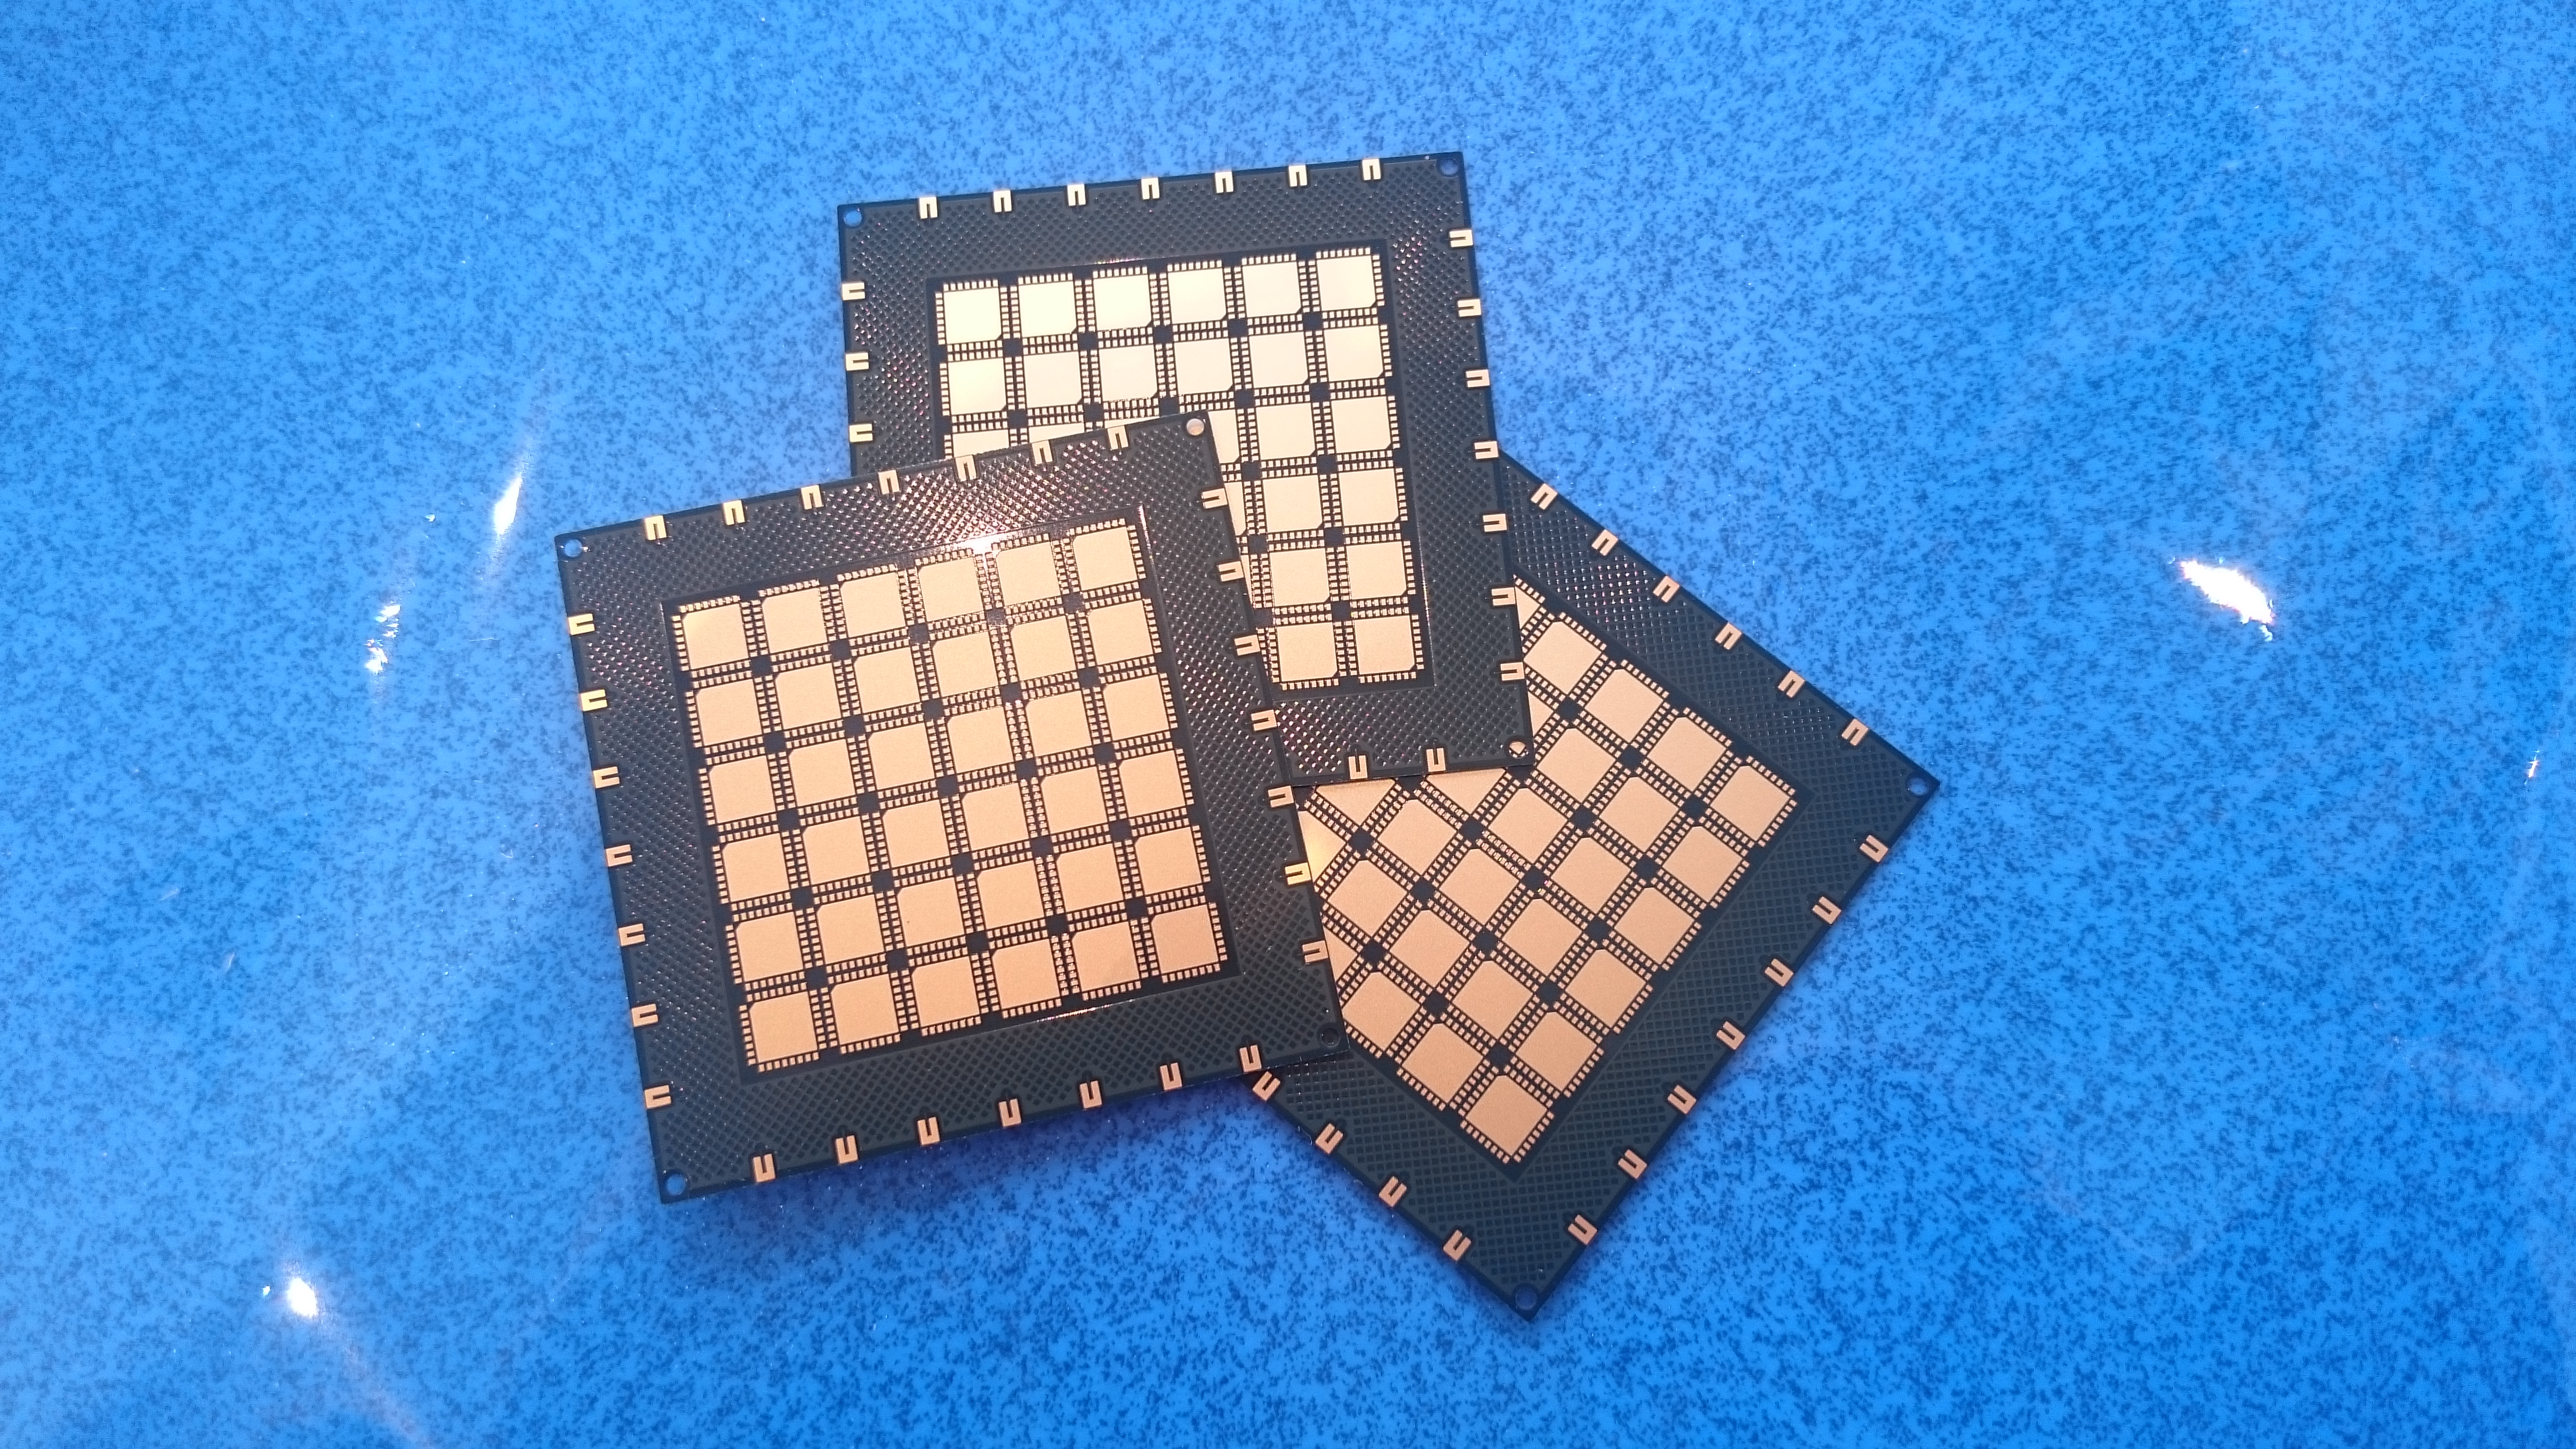 Substrates for microelectronics